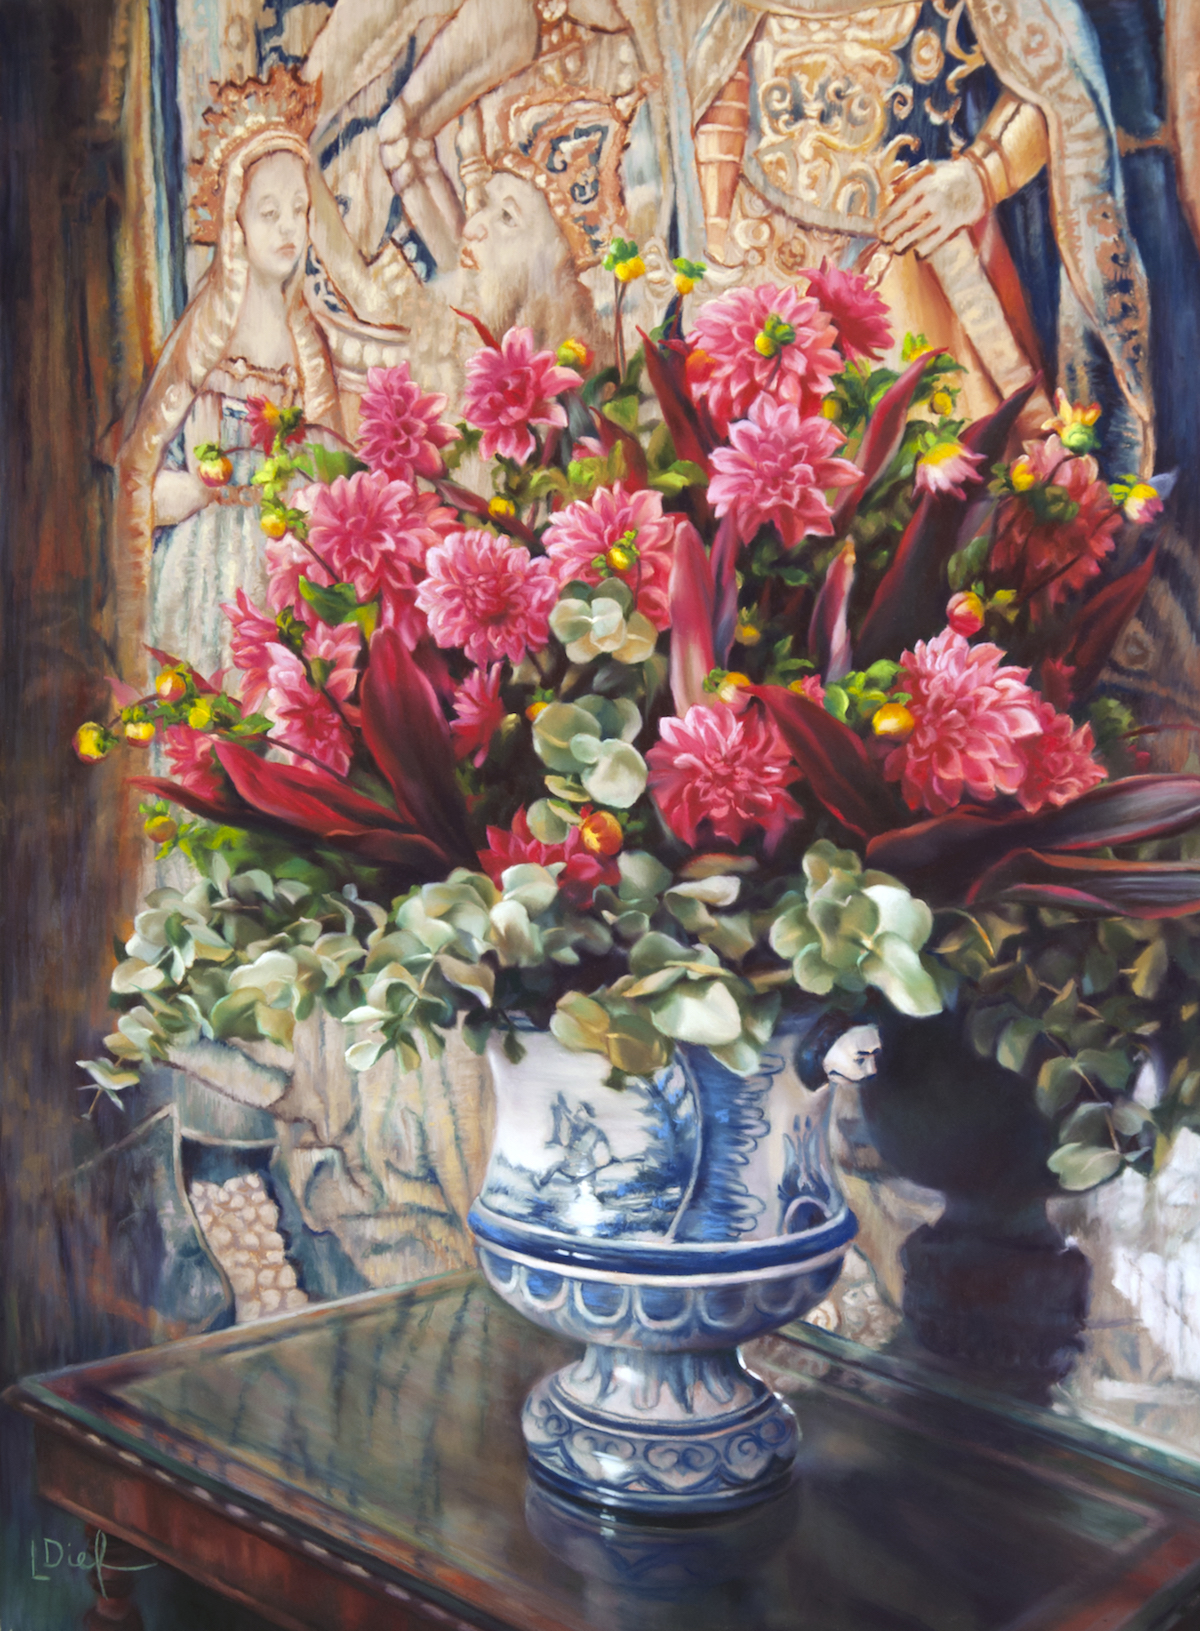 "Lyn Diefenbach, ""In the Light of History,"" Jan 2017, Pastel on Fisher 400, 24 x 18 in. Sold. Various trips across France and the UK gave me inspiration to include mediaeval tapestries as a backdrop for still life."